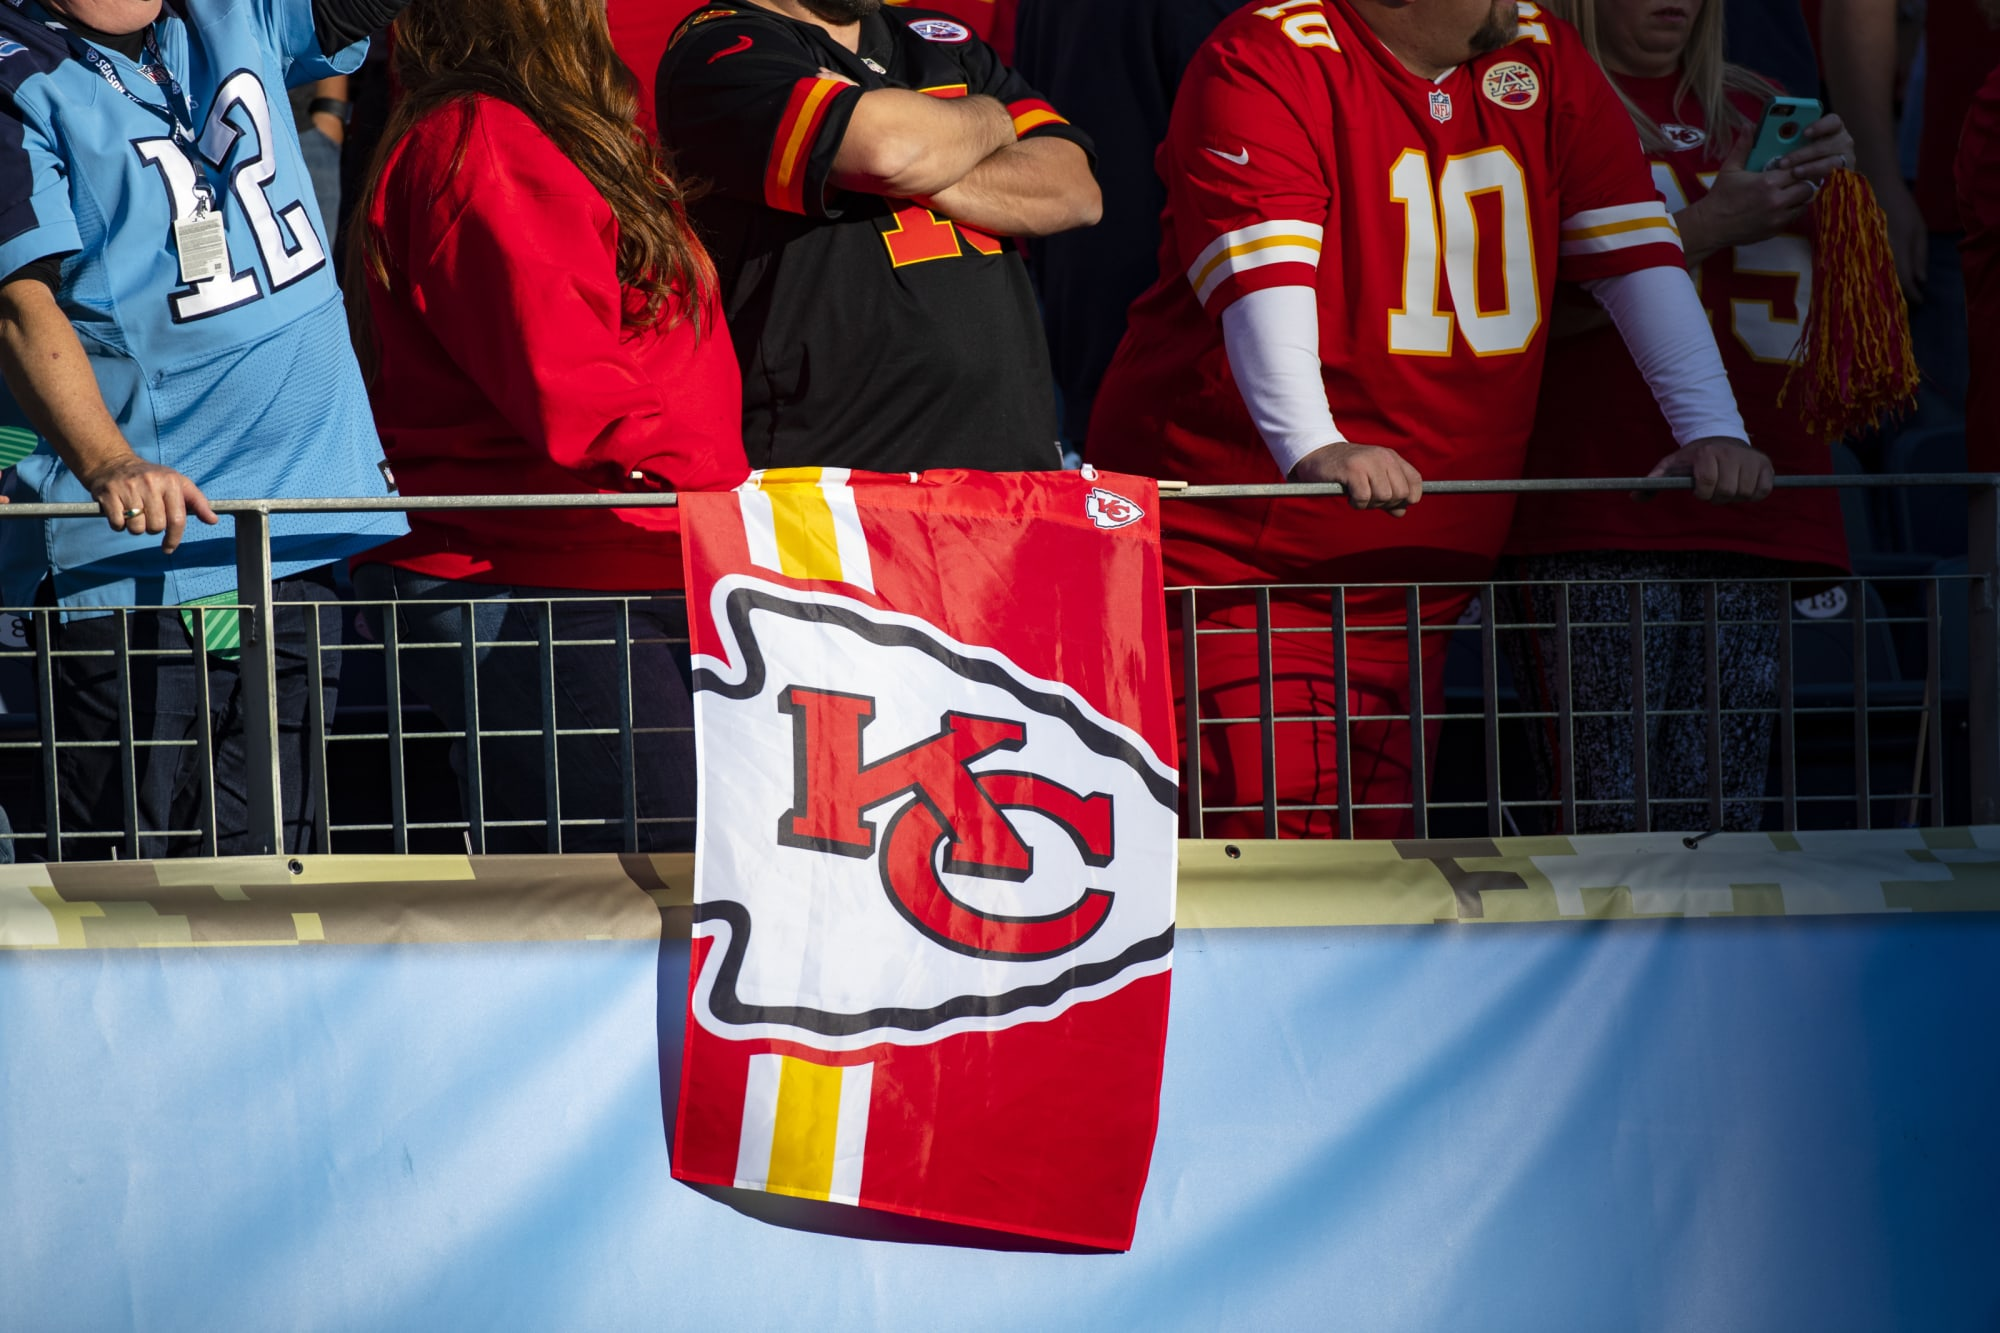 Former Chiefs coach Howard Mudd dies from motorcycle injuries